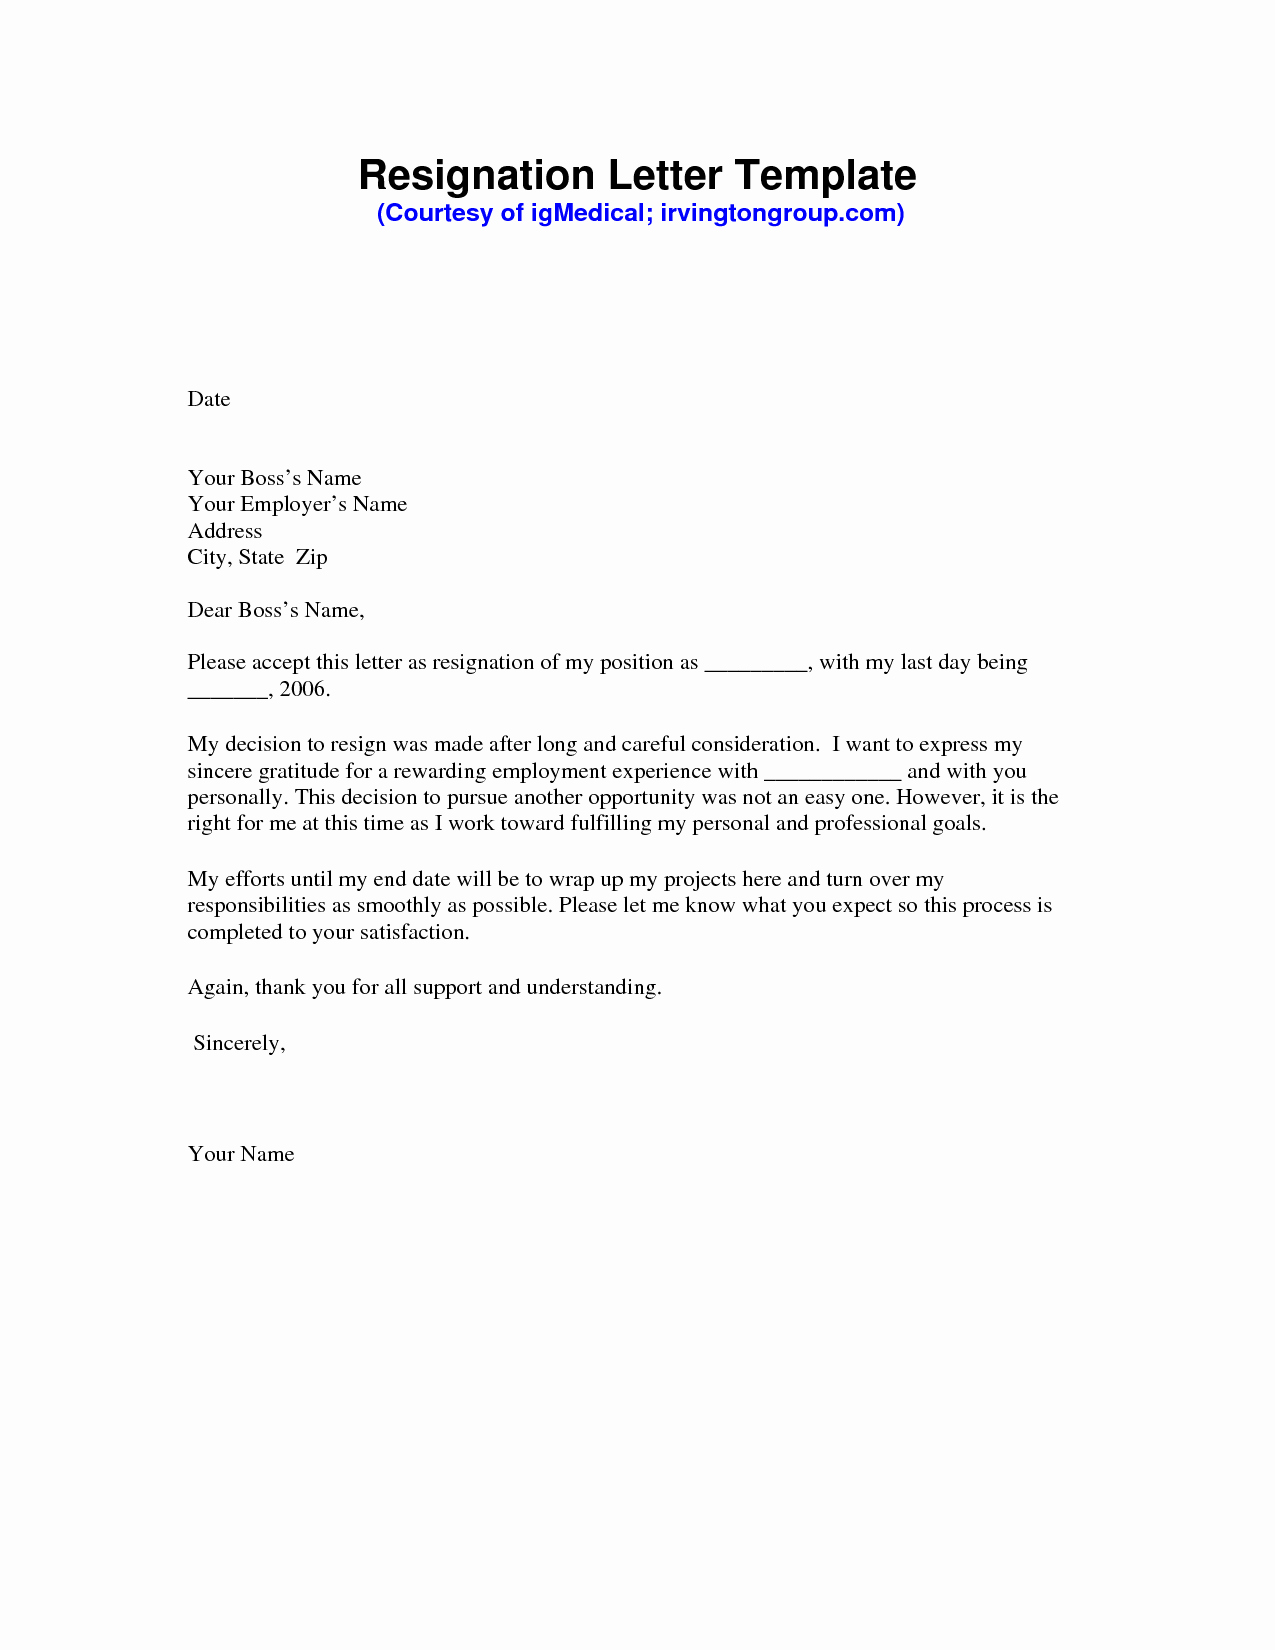 Professional Resignation Letter Template Inspirational Resignation Letter Sample Pdf